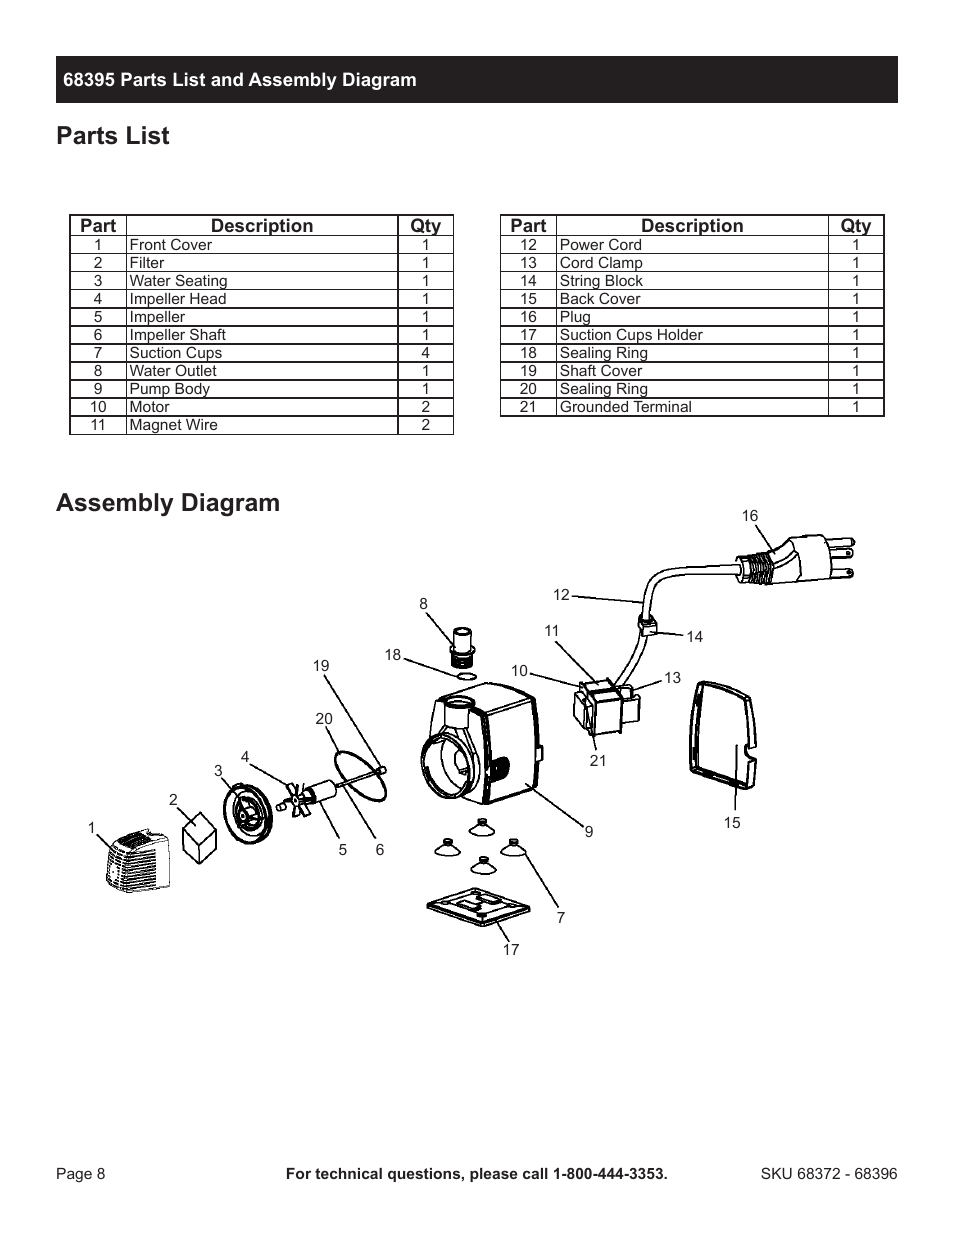 parts list assembly diagram